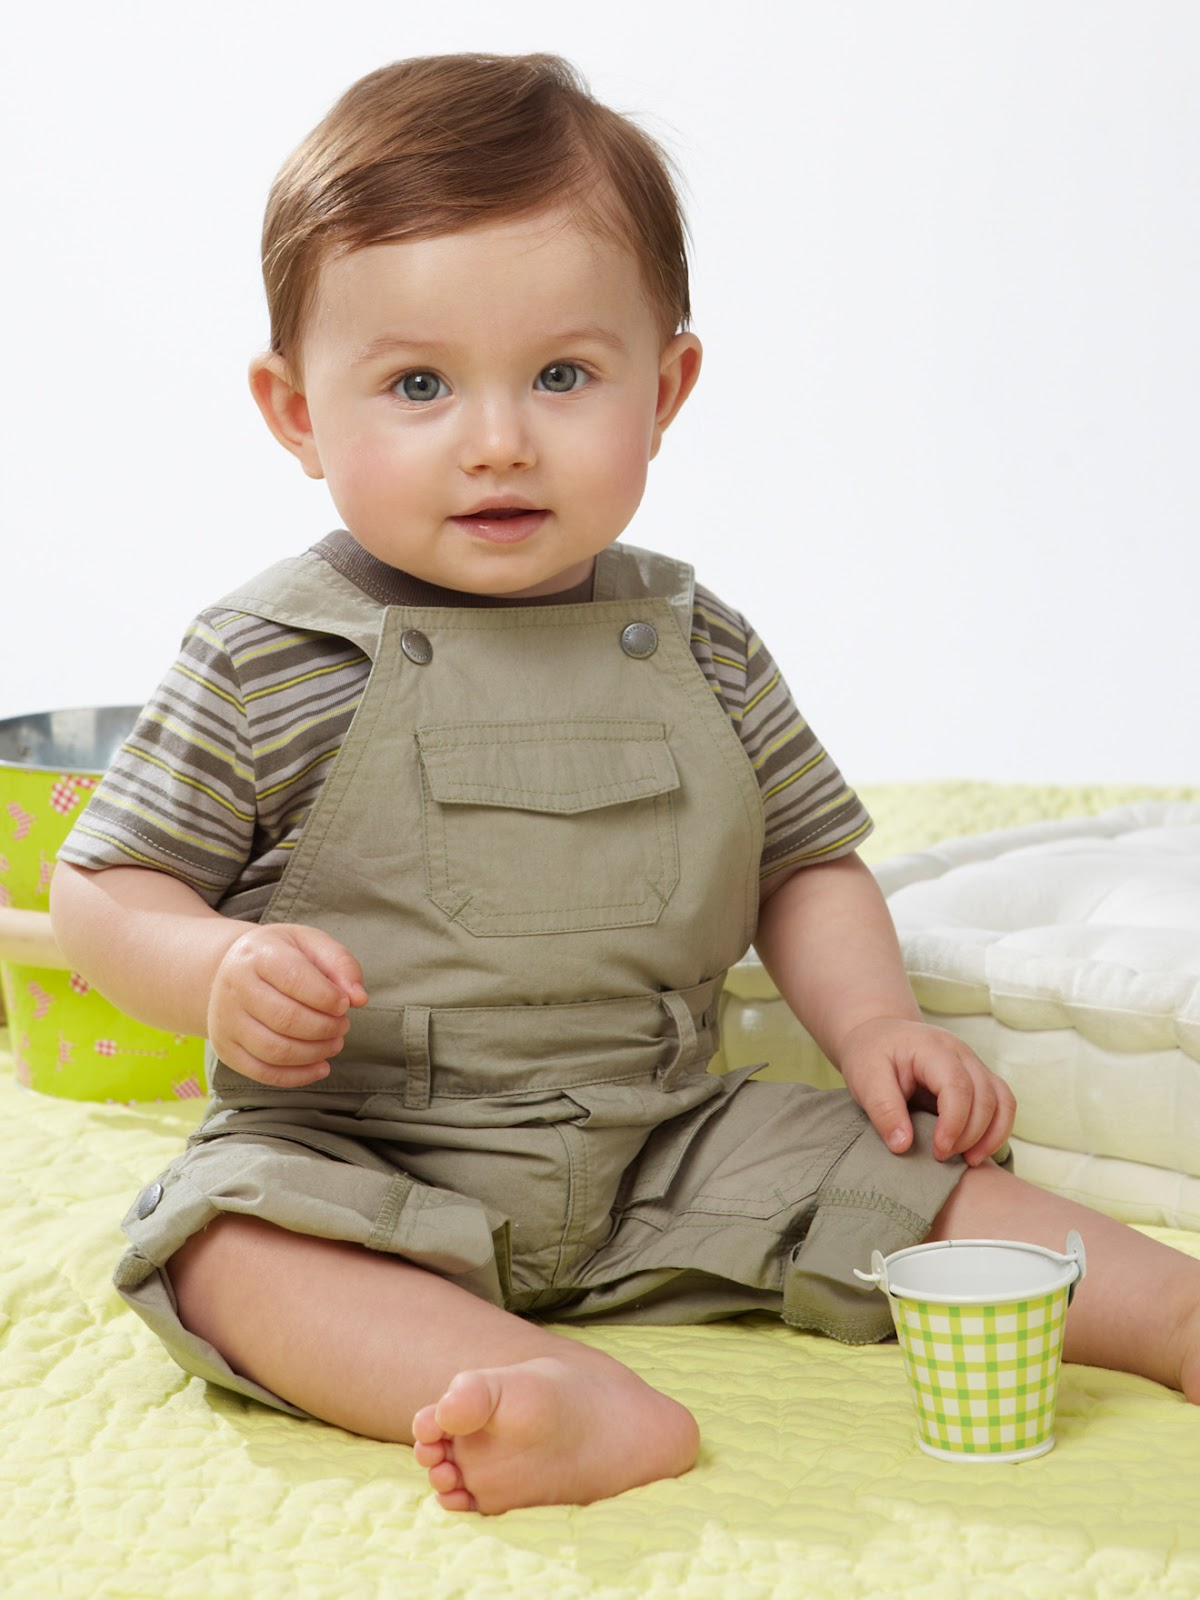 Bebes 16 Meses Comportamiento Almu1414 Y Jessicabonjour Fashion Victims Ropa Para Bebes